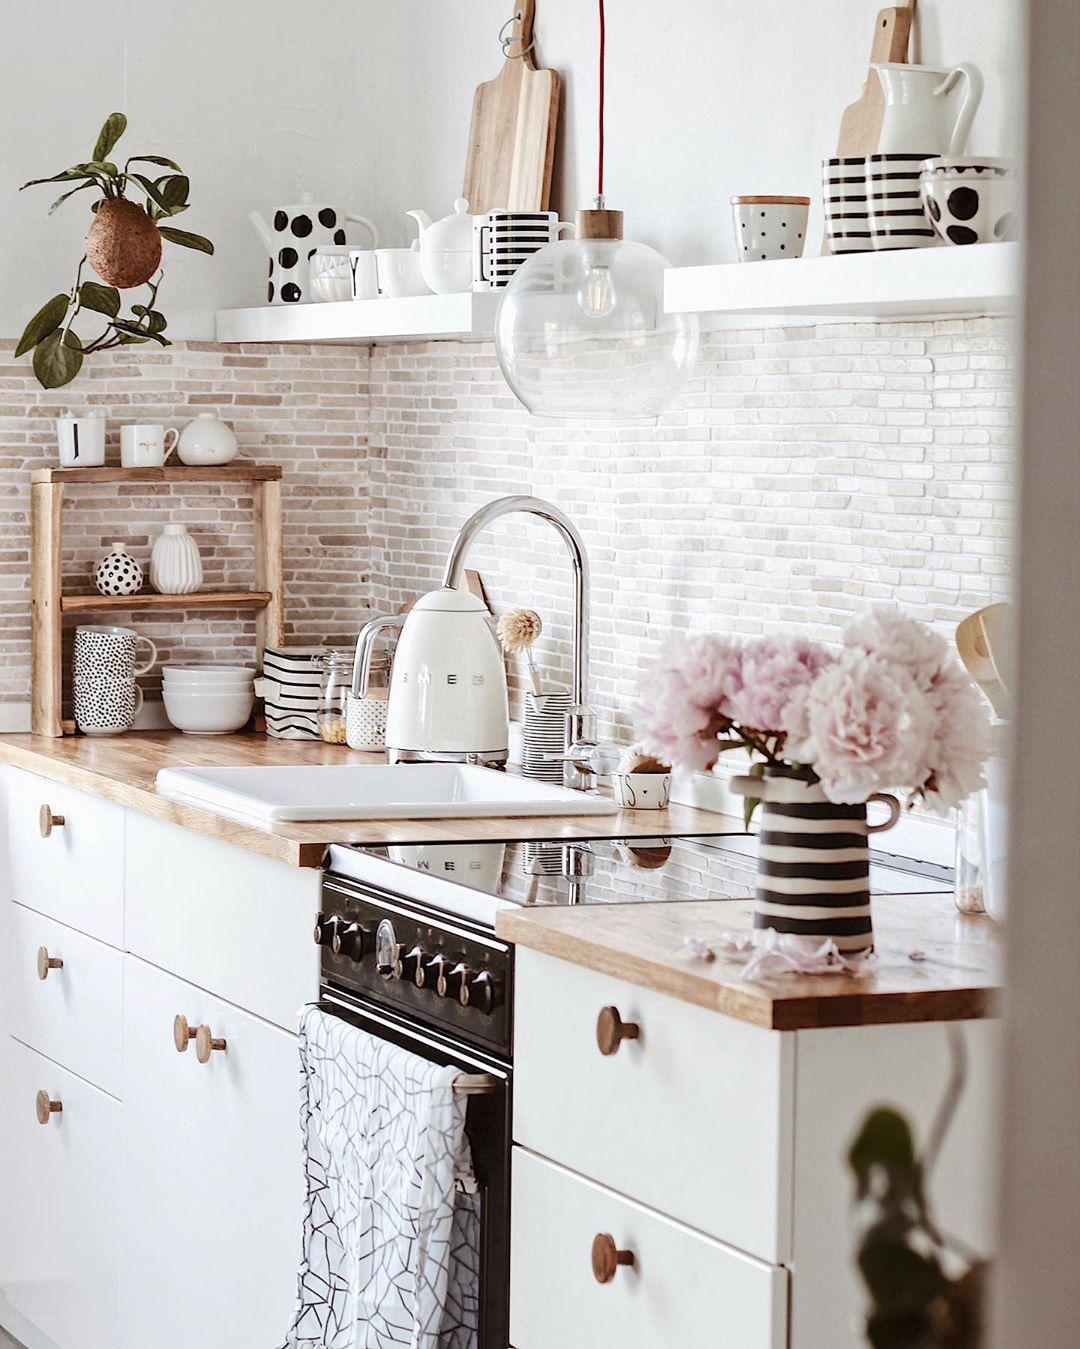 Inspiring Kitchen Design Ideas For Your Home - Page 4 of 35 - Liatsy Fashion